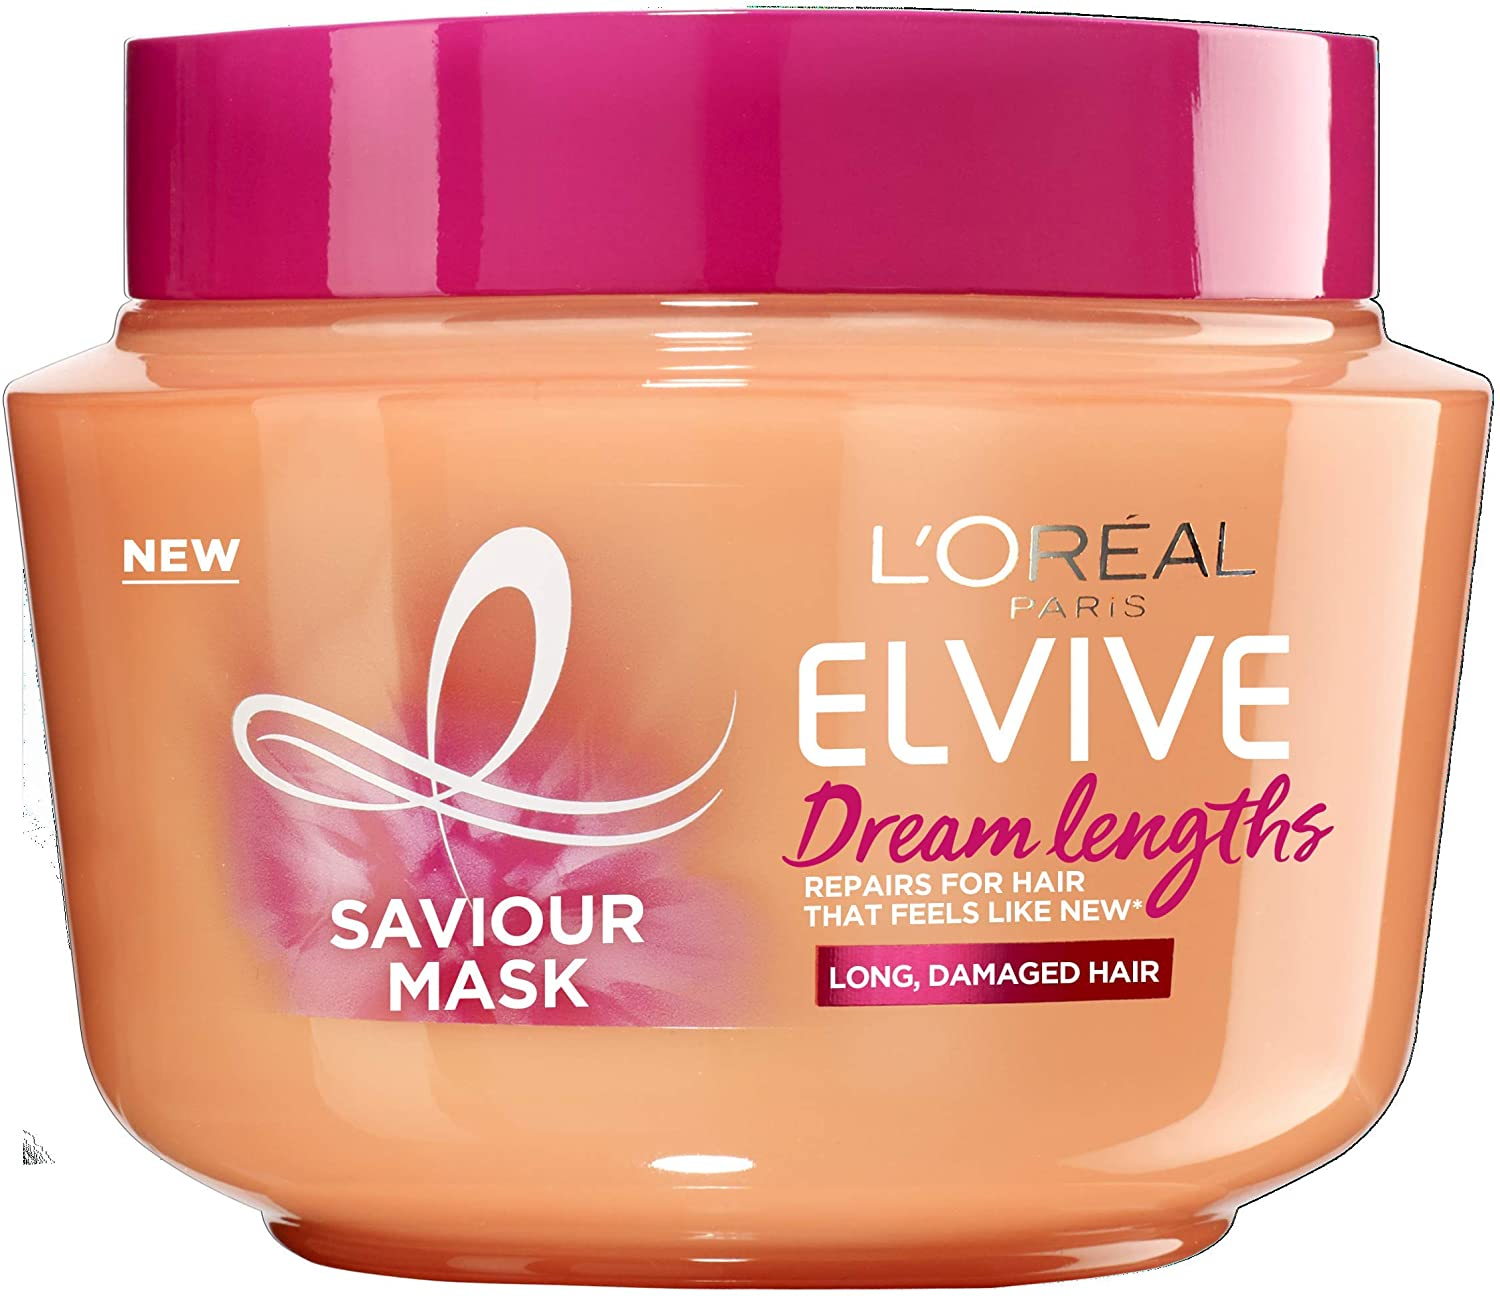 L Oreal Elvive Dream Lengths Long Hair Mask For Long Damaged Hair 300ml Amazon Co Uk Beauty